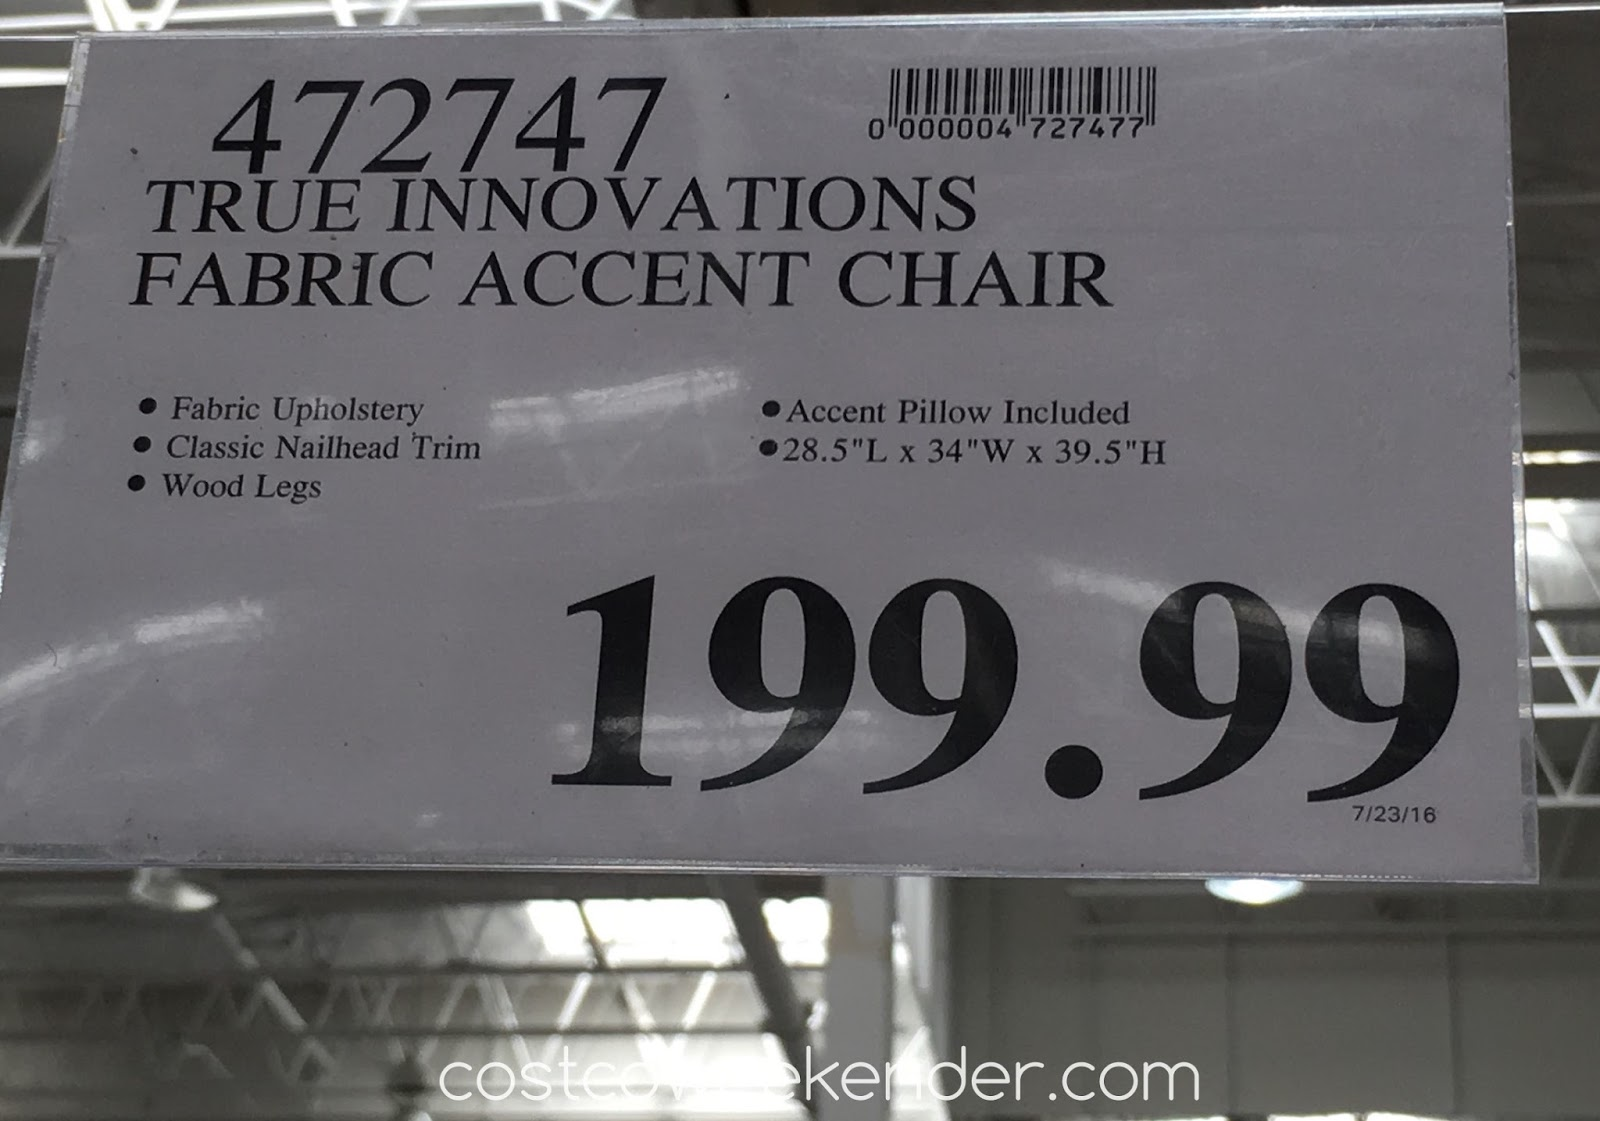 True Innovations Fabric Accent Chair | Costco Weekender